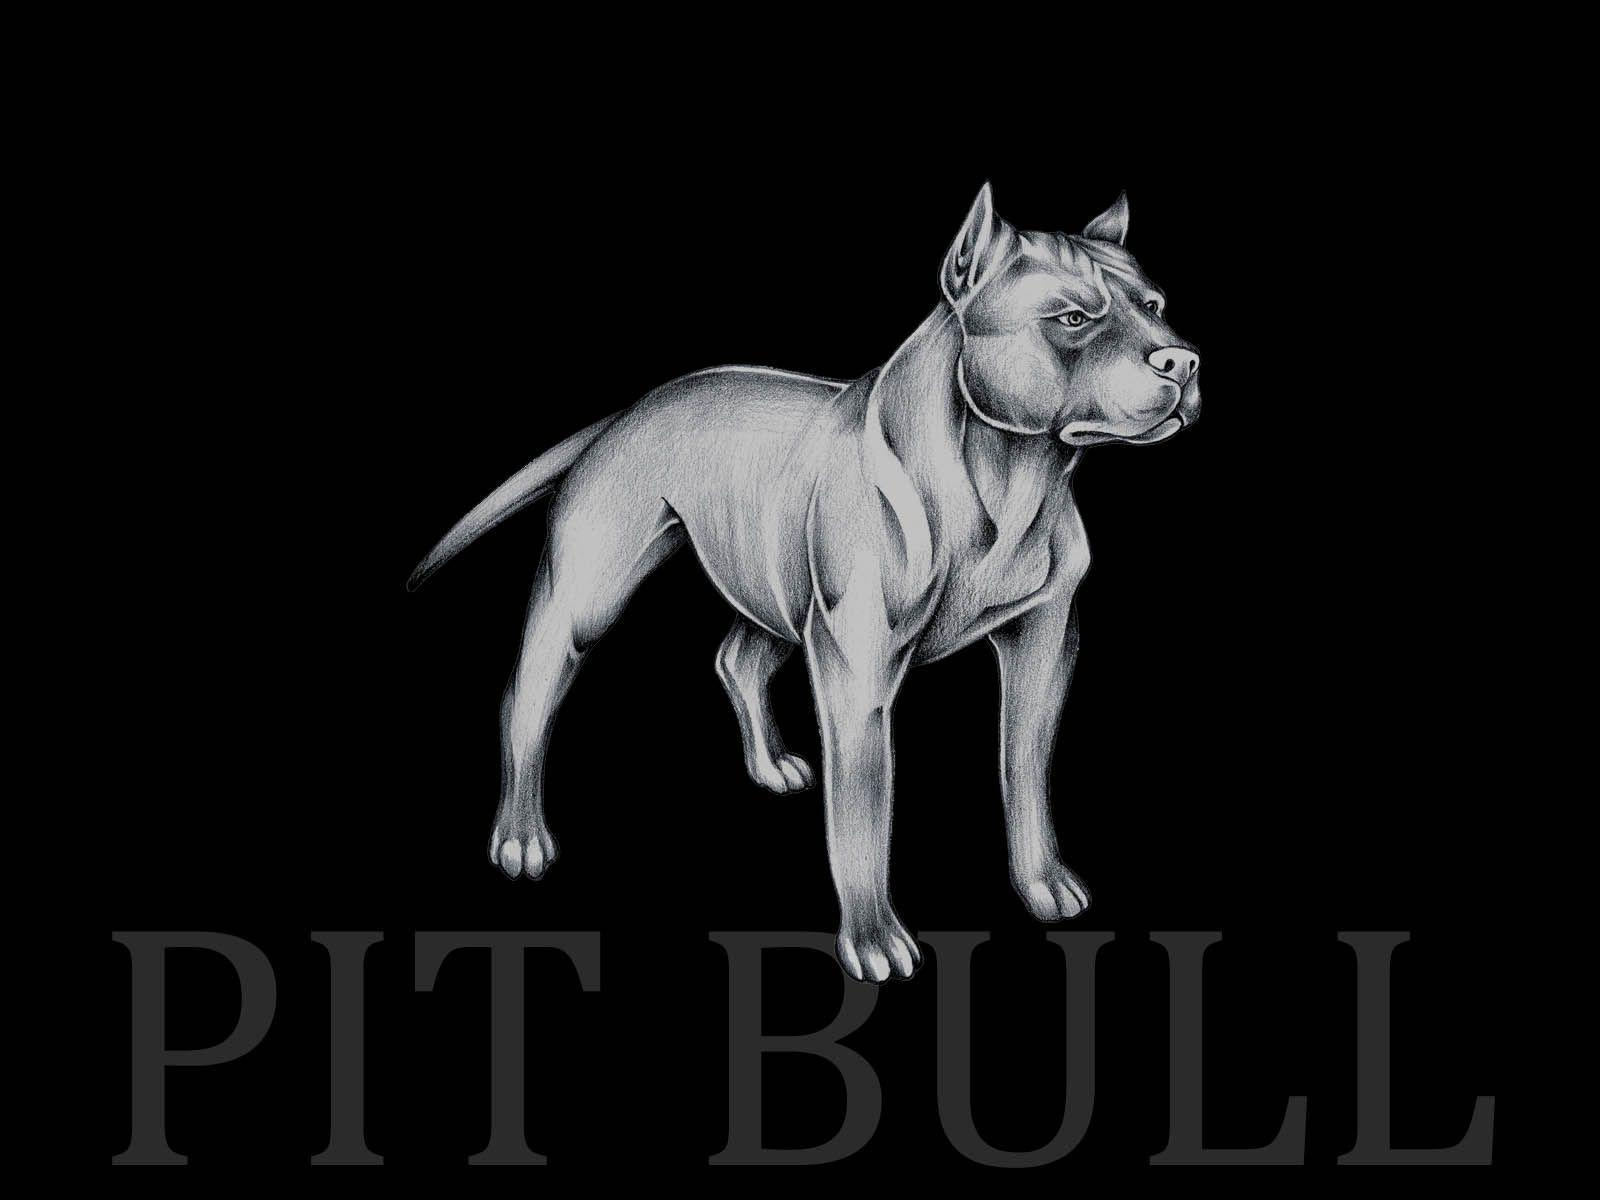 Pitbull wallpapers wallpaper cave - Pitbull dogs pictures wallpaper ...